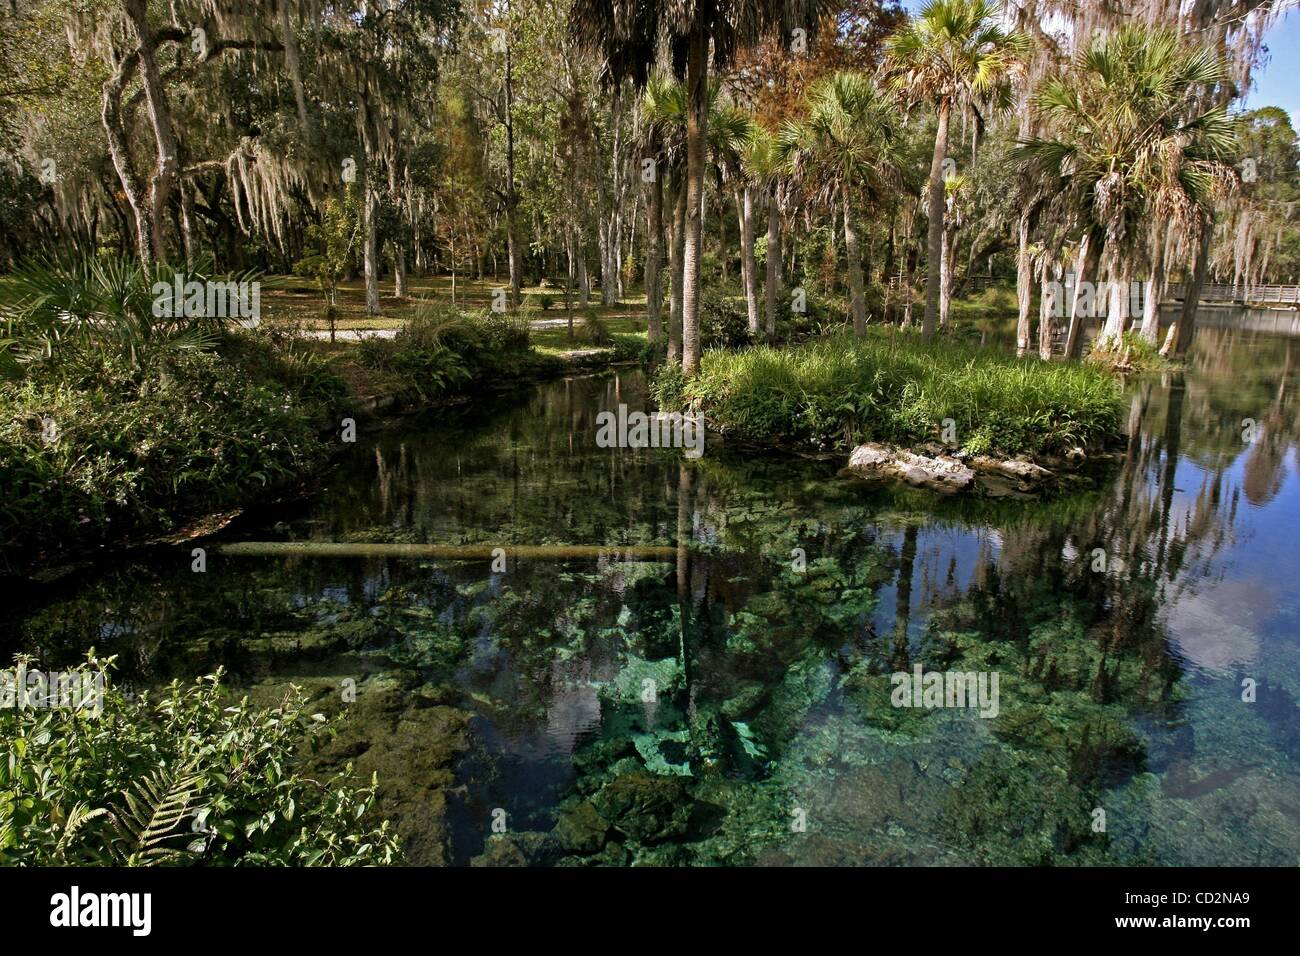 Mar 14, 2008 -Zephyrhills, Florida, USA - A pipe emerges from the opening of Crystal Spring, which is the source - Stock Image